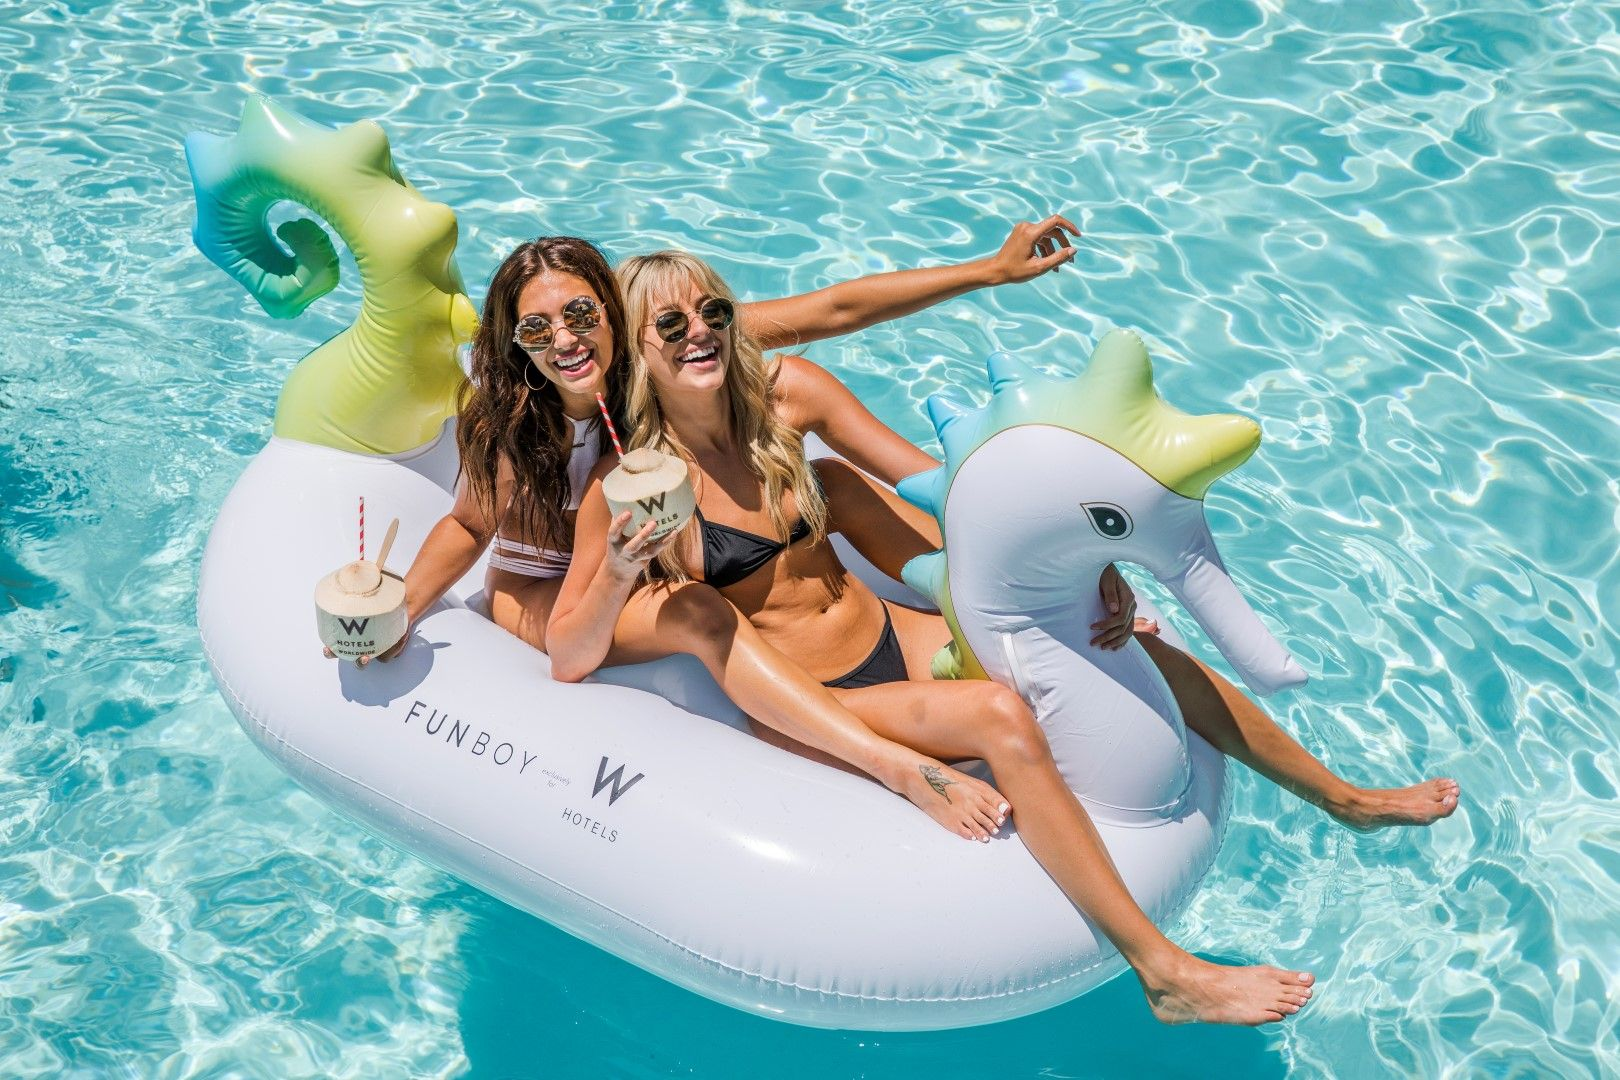 W Scottsdale- WET weekends